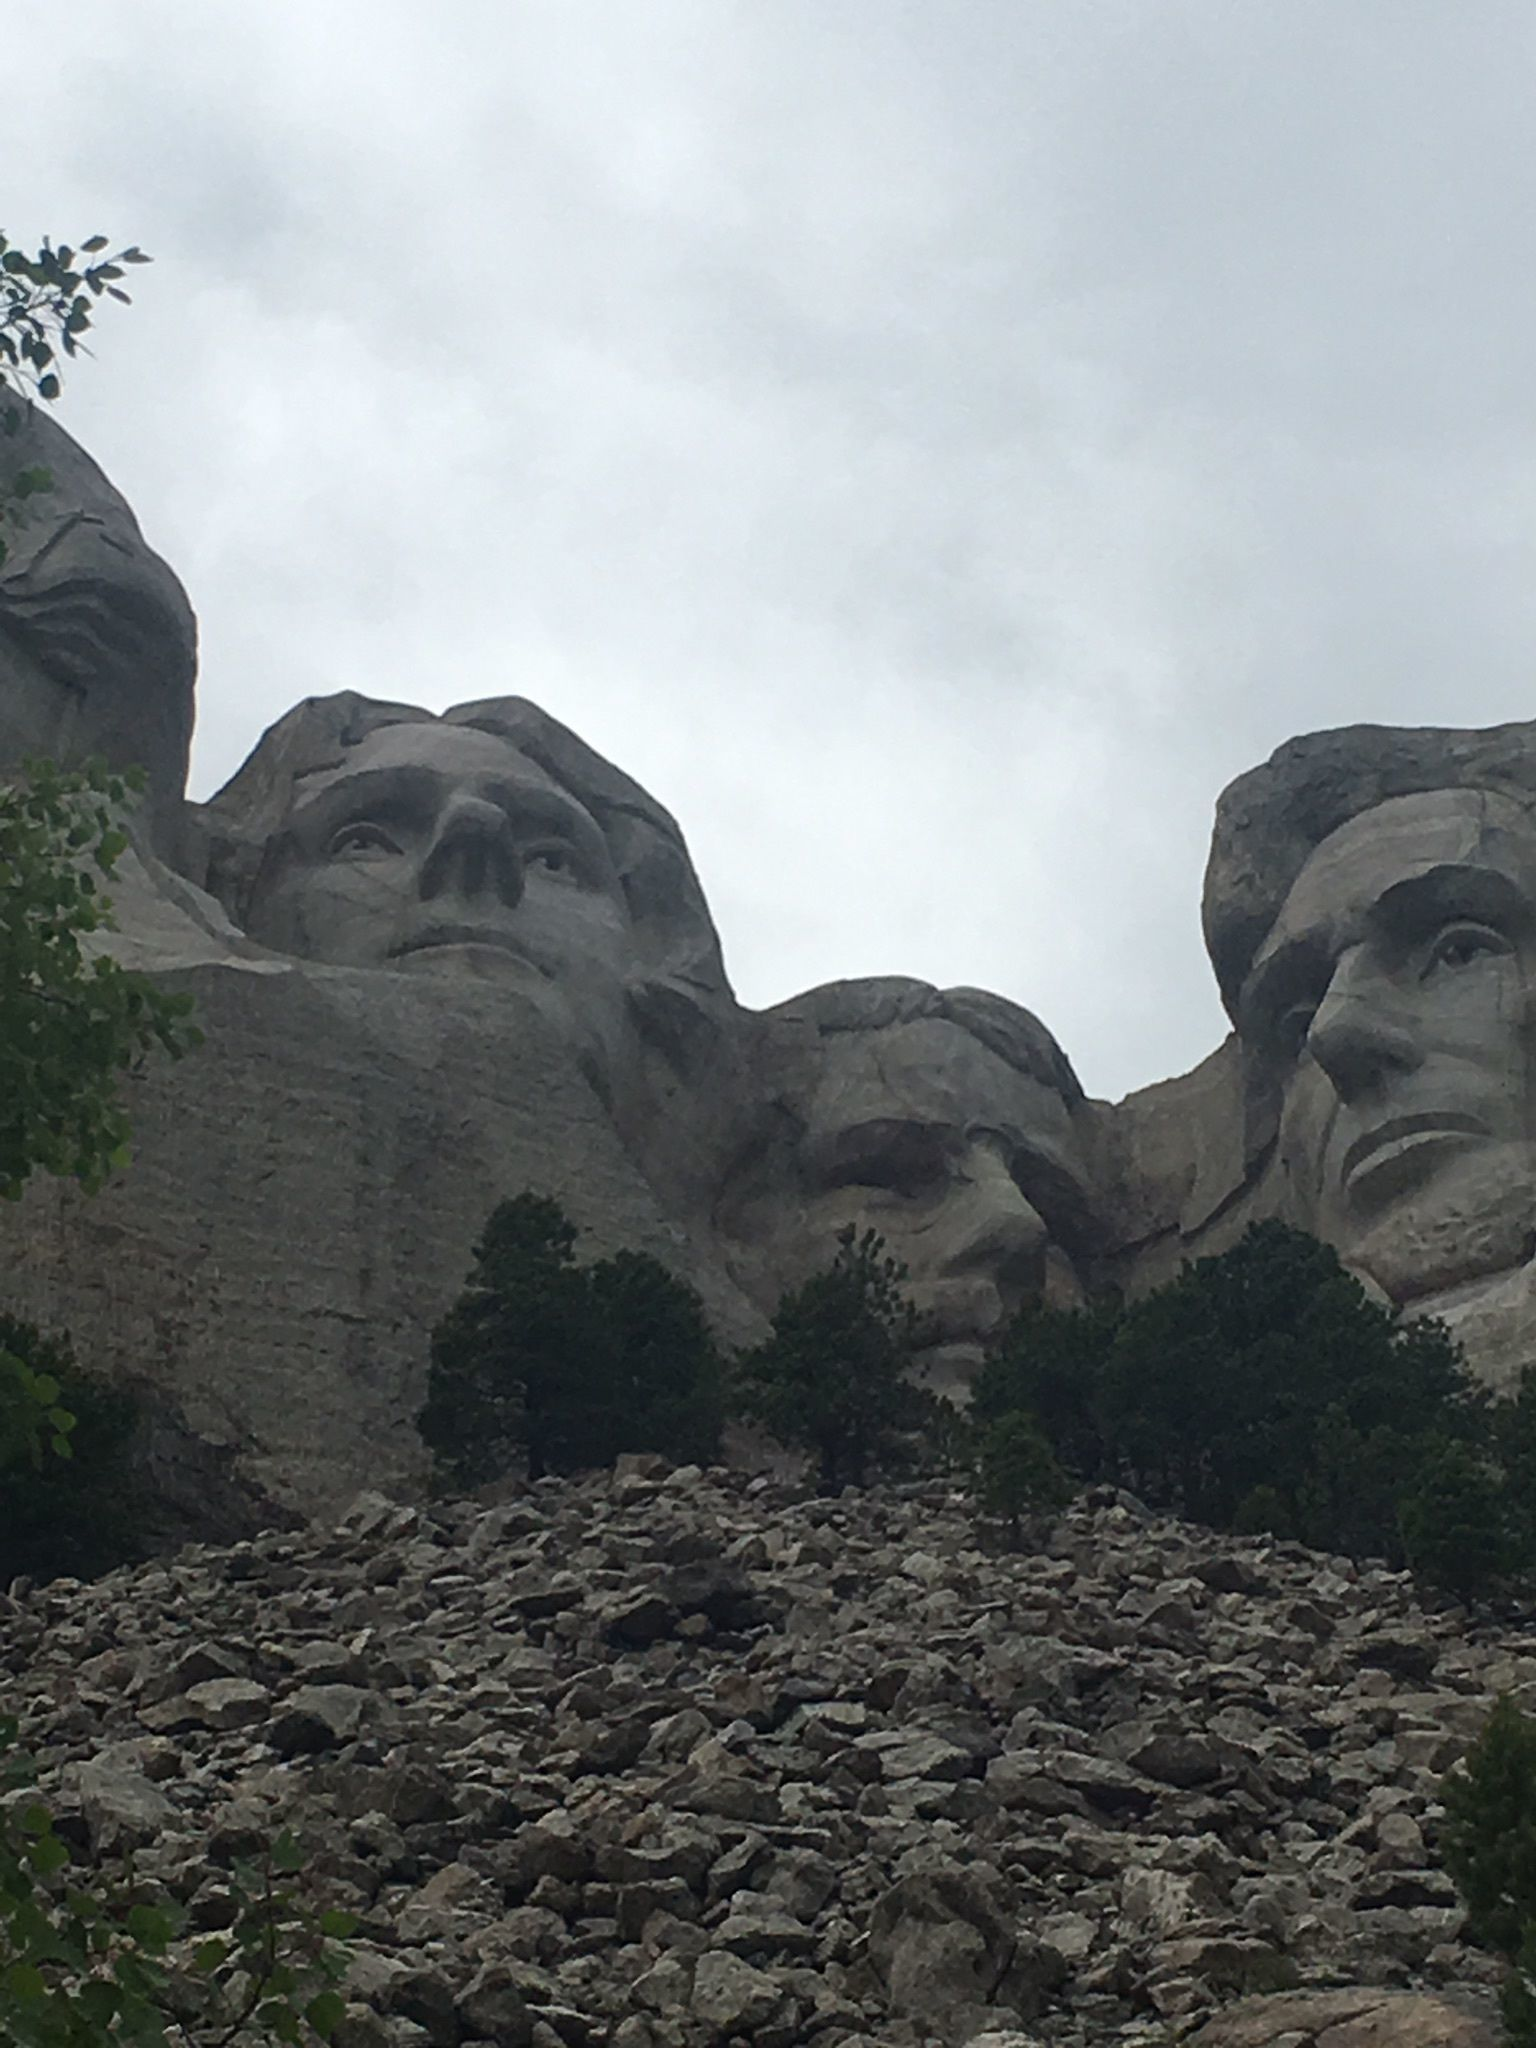 Presidential Trail, Mt Rushmore - South Dakota | AllTrails on map to grand canyon, map to alaska, map to hawaii, map to new orleans, map to canada, map to disneyland, map to mexico, map to minnesota, map to chicago, map to las vegas, map to new york, map to yosemite, map to ellis island, map to the alamo, map to california, map to united states, map to niagra falls, map to maine, map to paris, map to yellowstone national park,